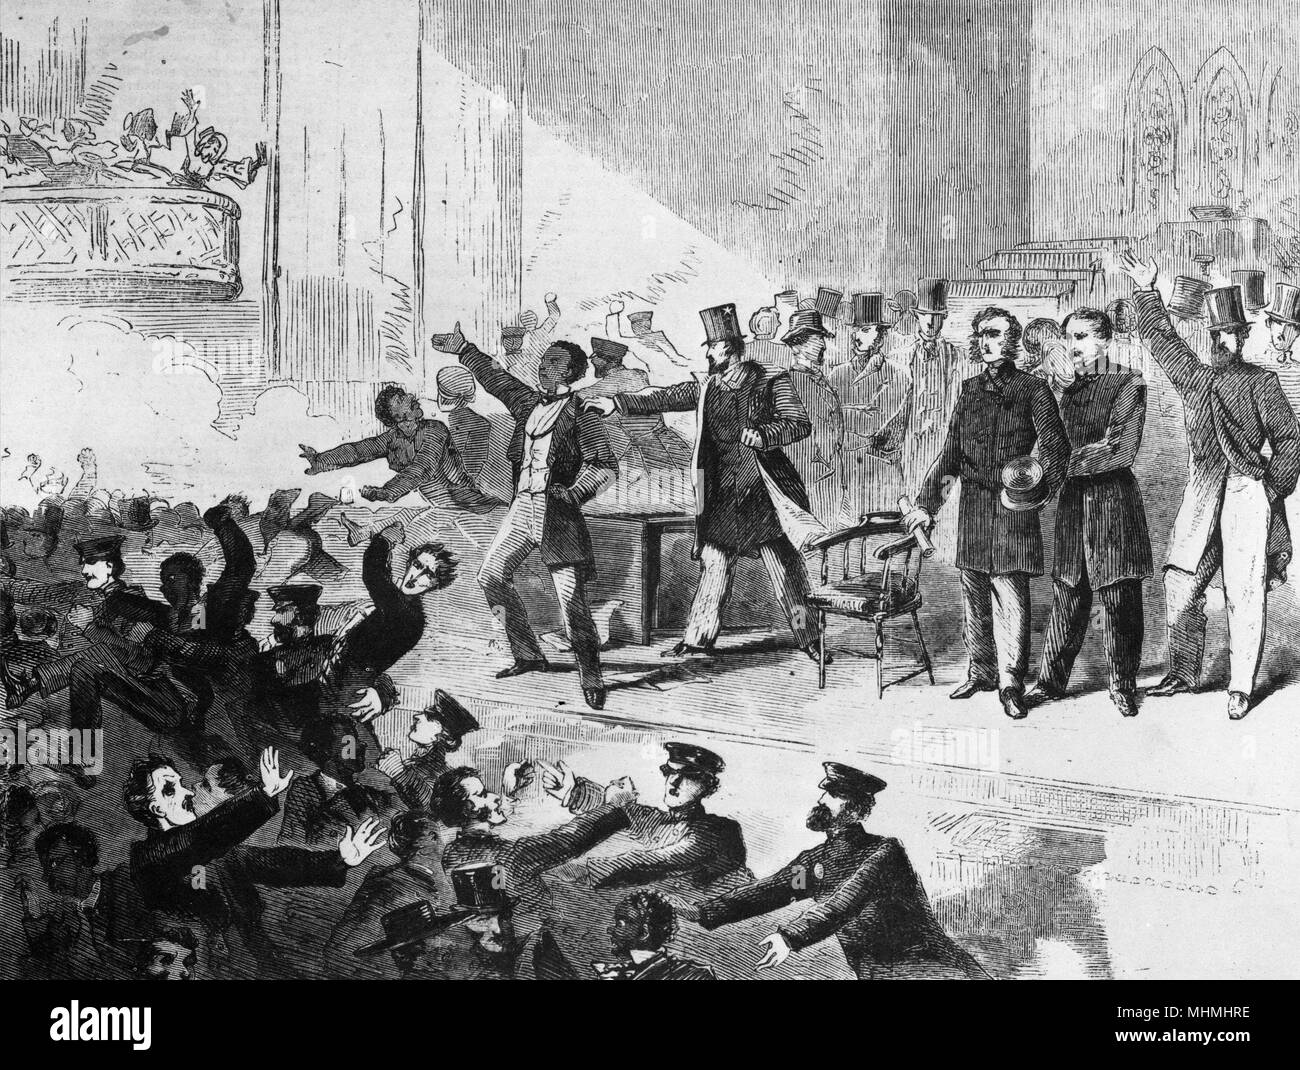 Expulsion of Negroes and Abolitionists from Tremont Temple, Boston, Massachusetts       Date: 3 December 1860 - Stock Image